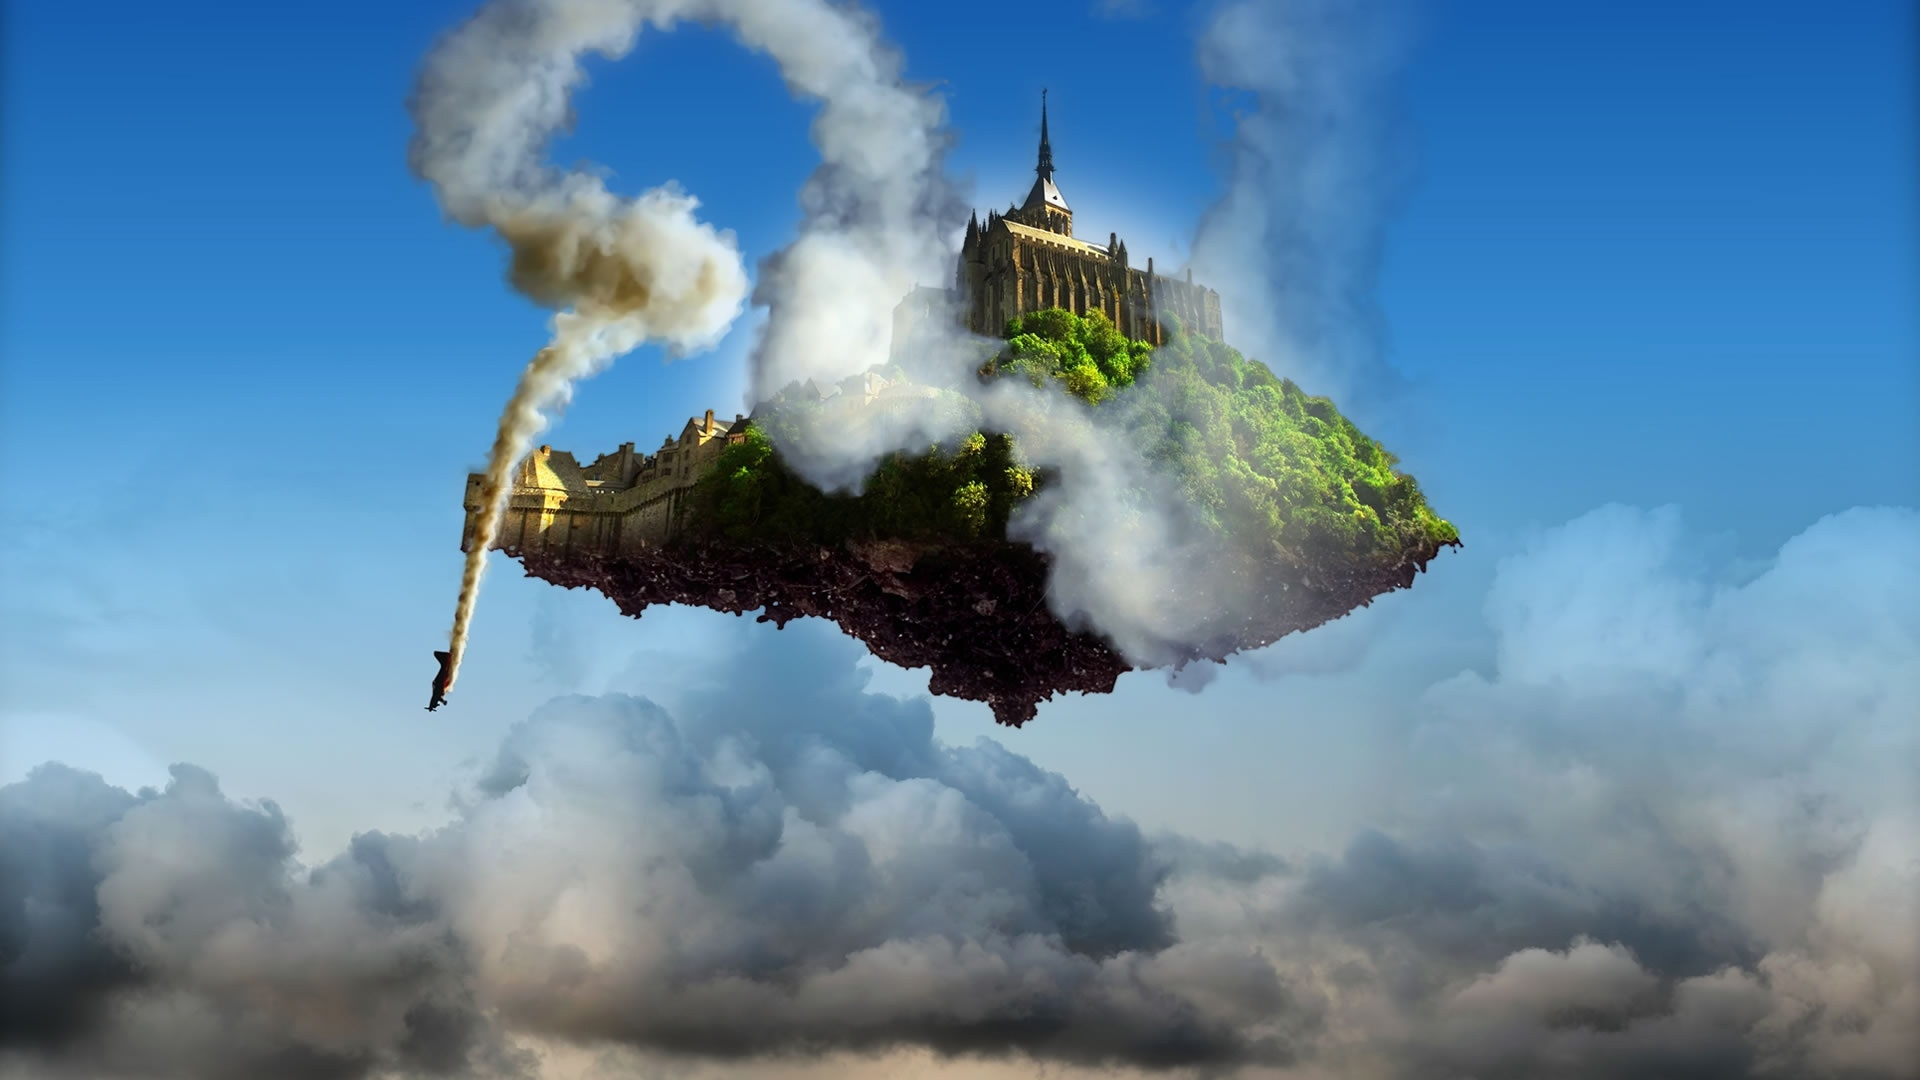 Amazing 3D fantasy   High Definition Wallpapers   HD wallpapers 1920x1080